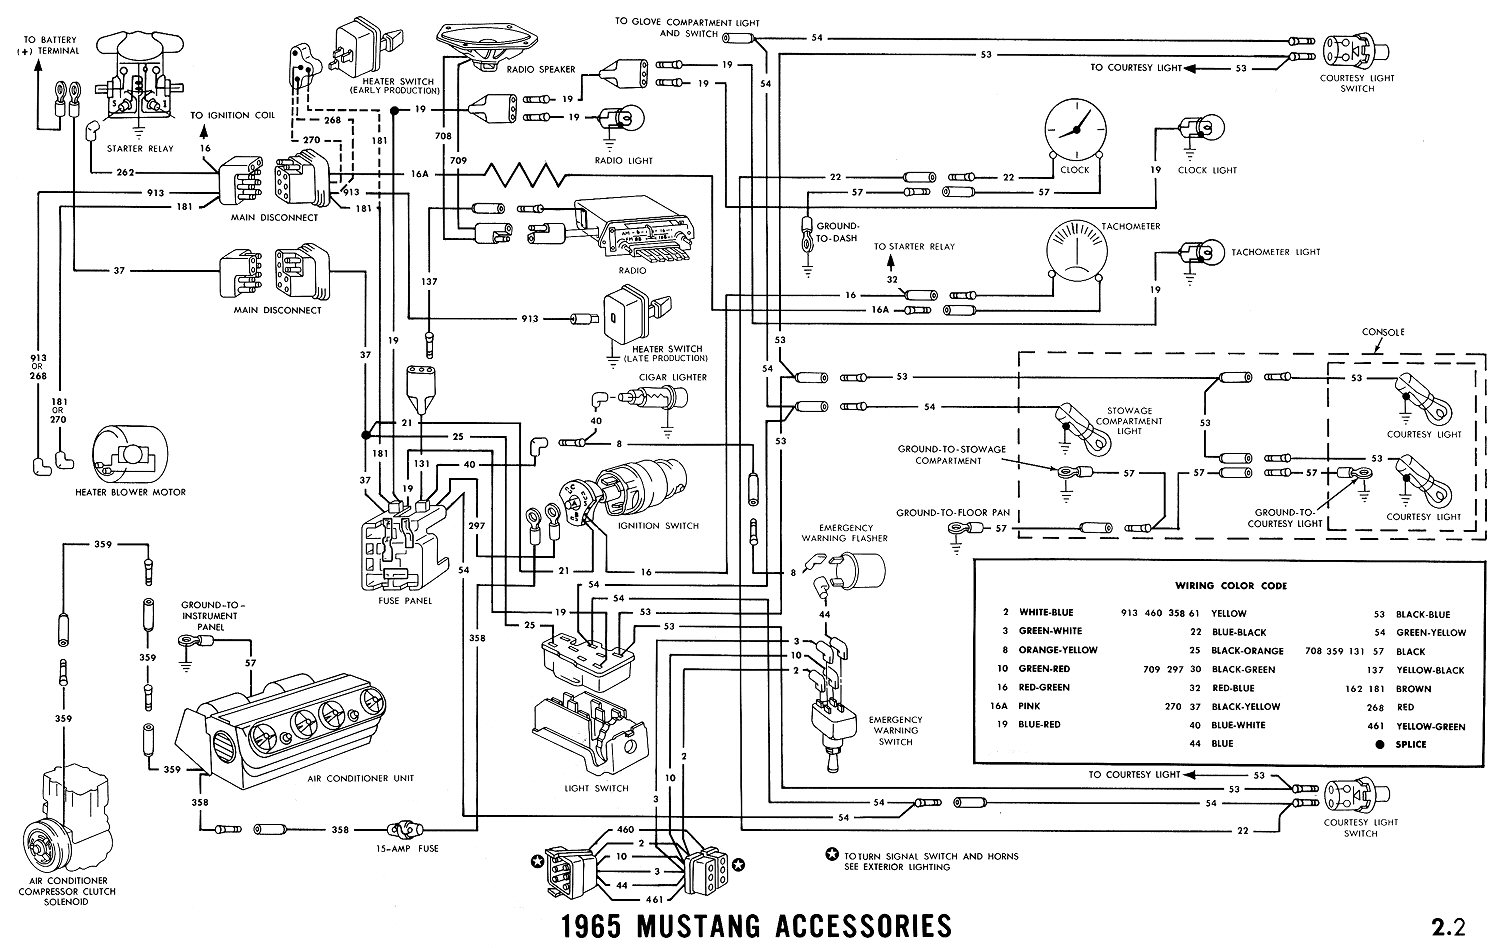 65 Mustang Fuse Box Repair Schematic Diagrams 65 Mustang Door Diagram 65  Mustang Fuse Box